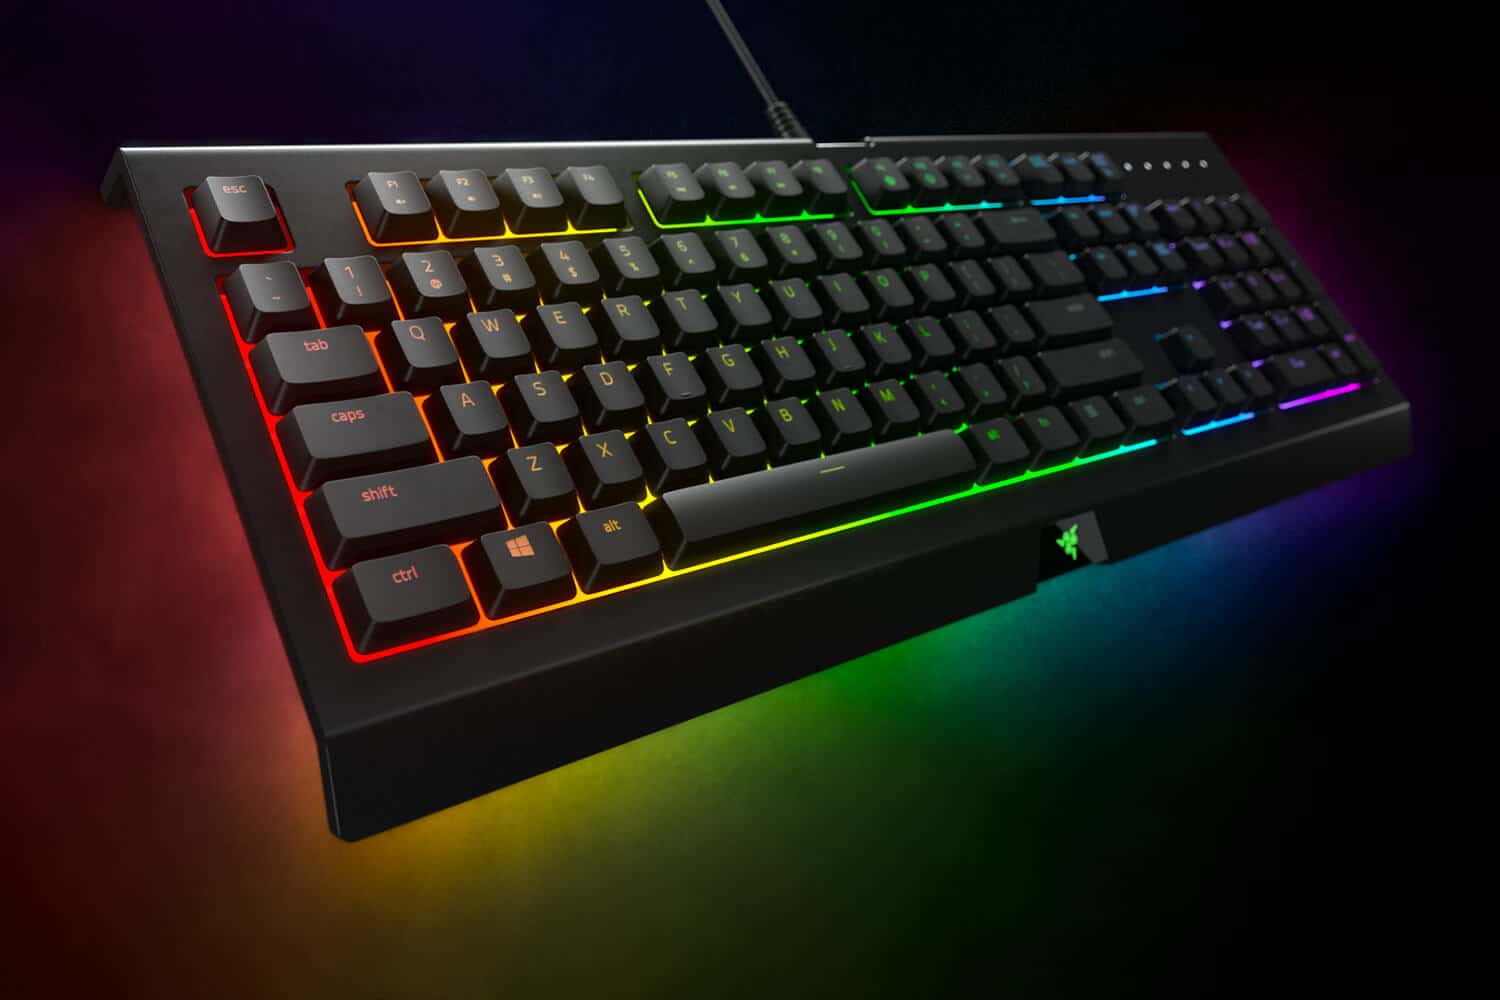 Fall Creators Update Wallpaper Razer S New Rgb Gaming Keyboards Are Spill Resistant And